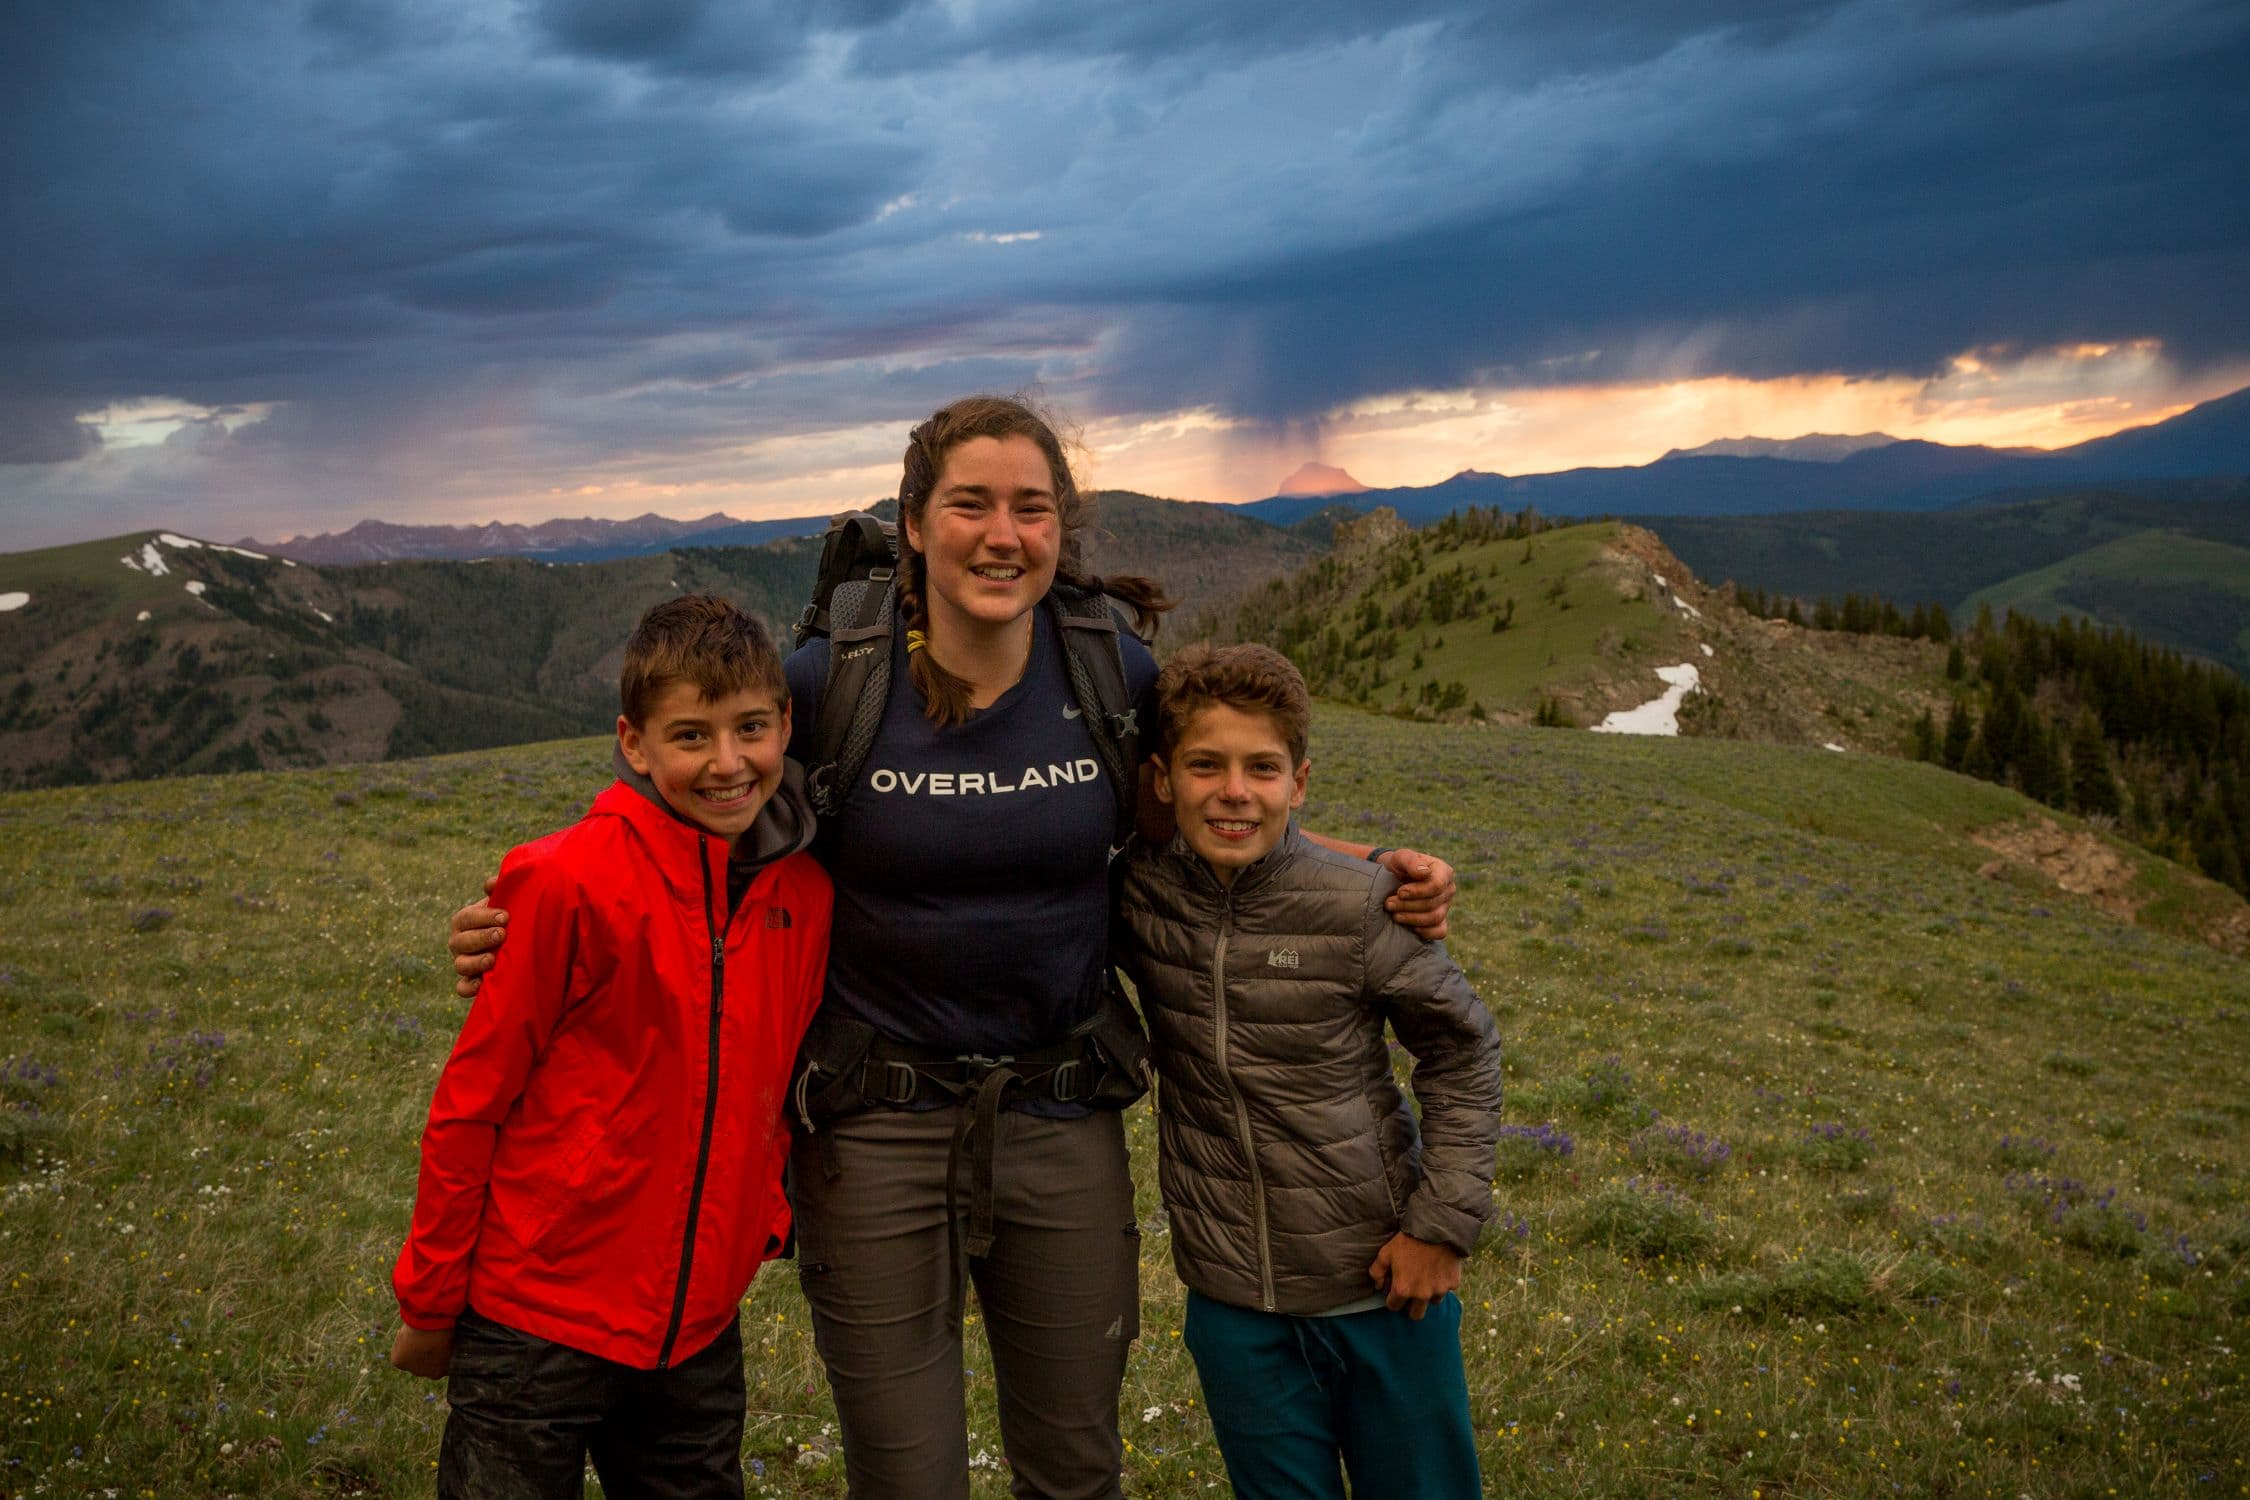 Trip leader posing with two campers on a teen adventure program